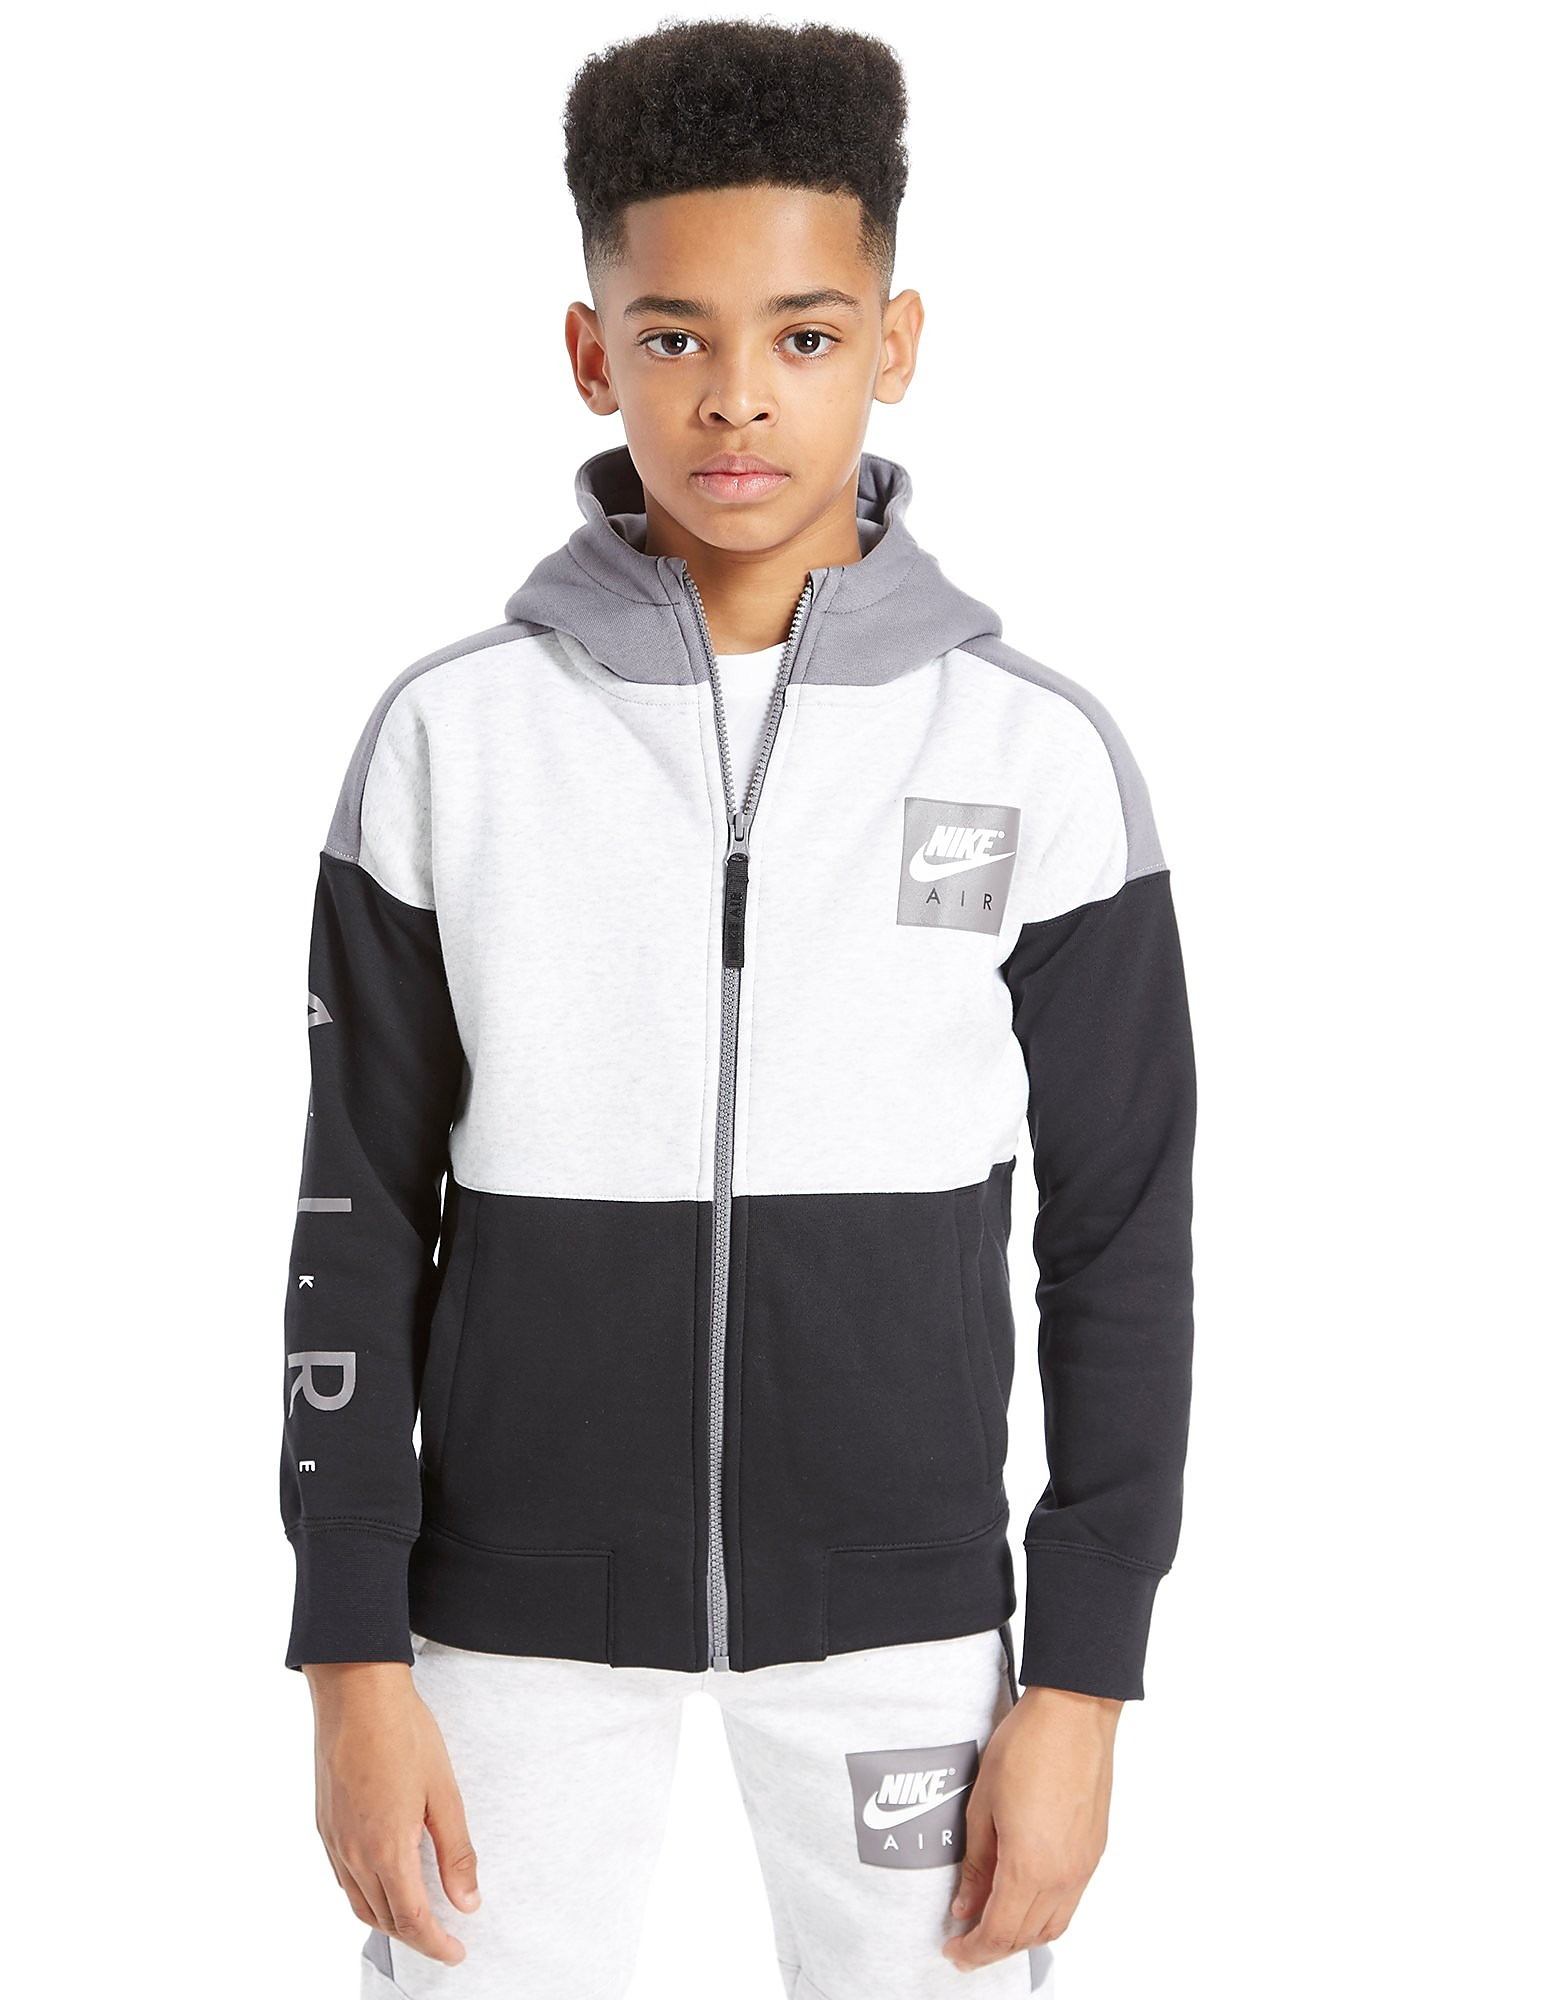 Nike Veste à capuche Air Junior